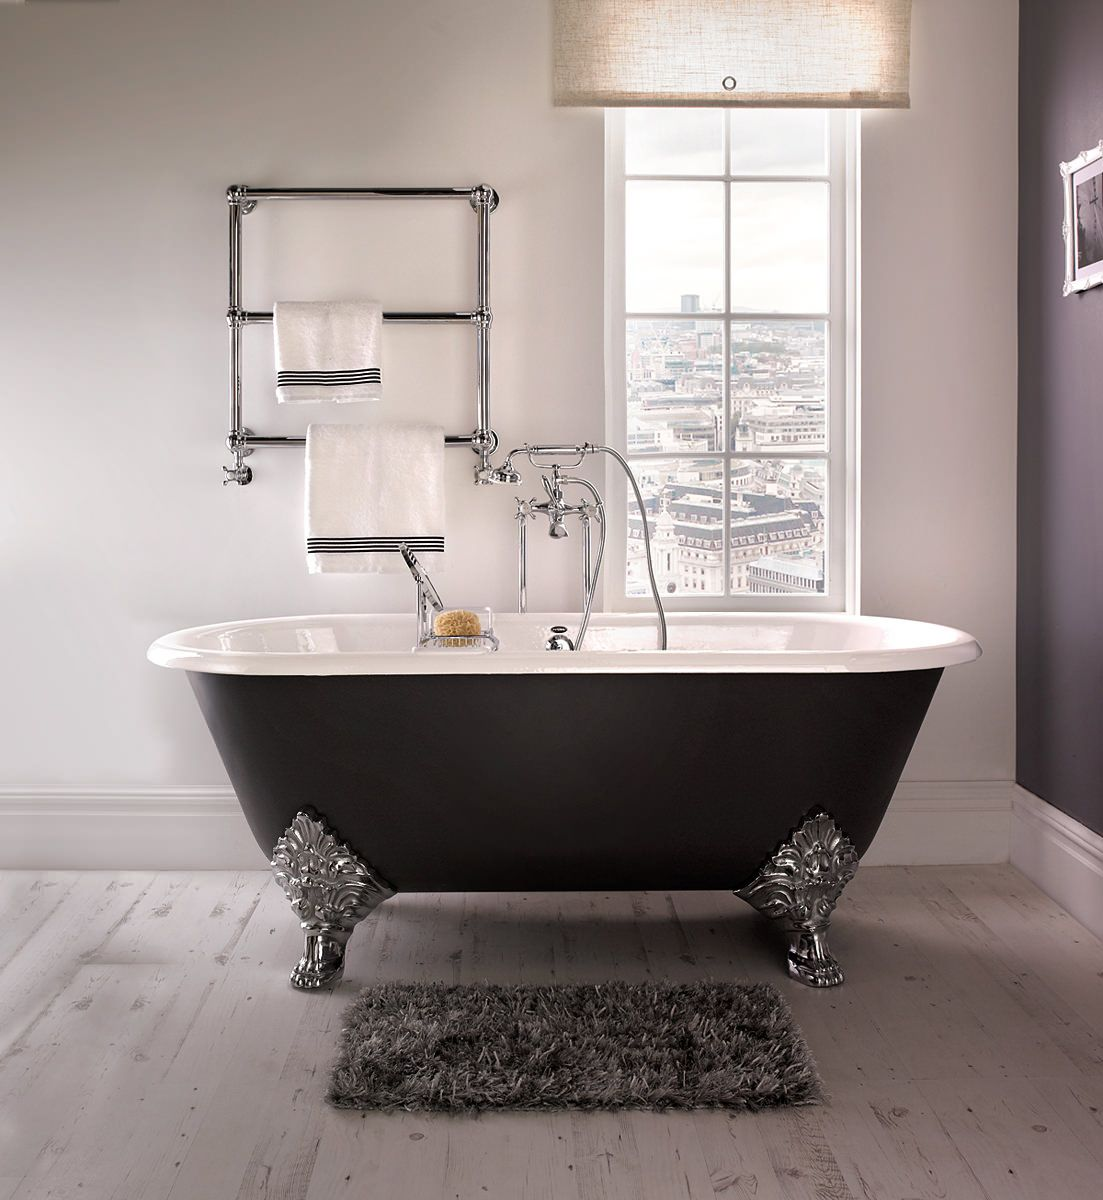 Imperial Roseland 1780mm Cast Iron Bath